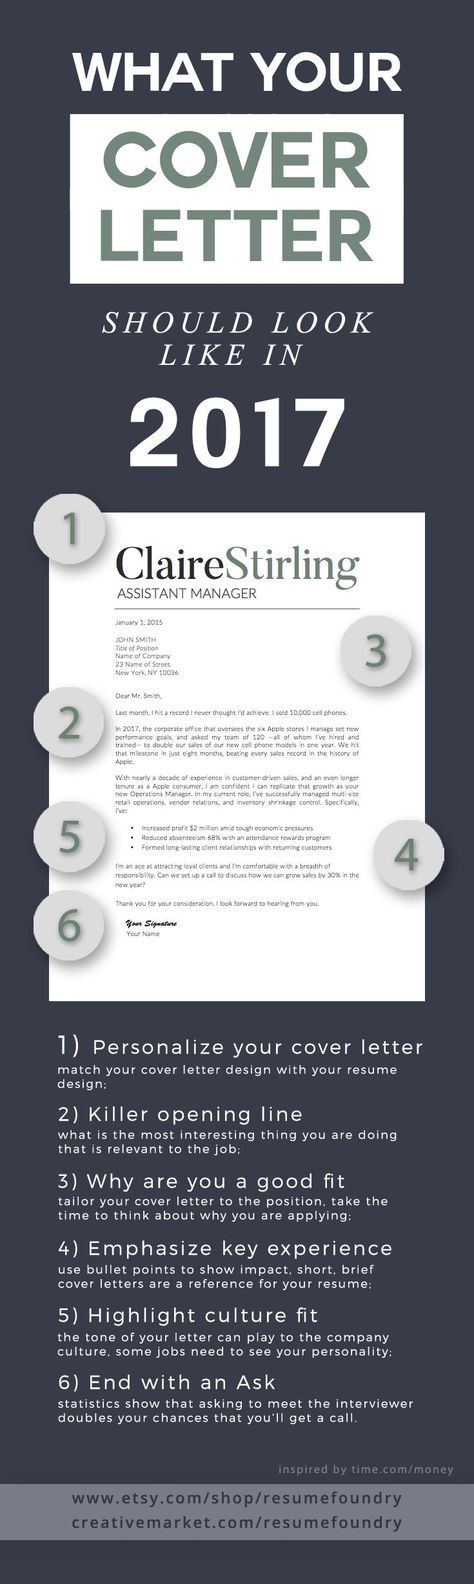 cover letter for sales manager position%0A Elegant Black  u     White Cover Letter Template   Words of Wisdom   Pinterest    Letter designs and Wisdom